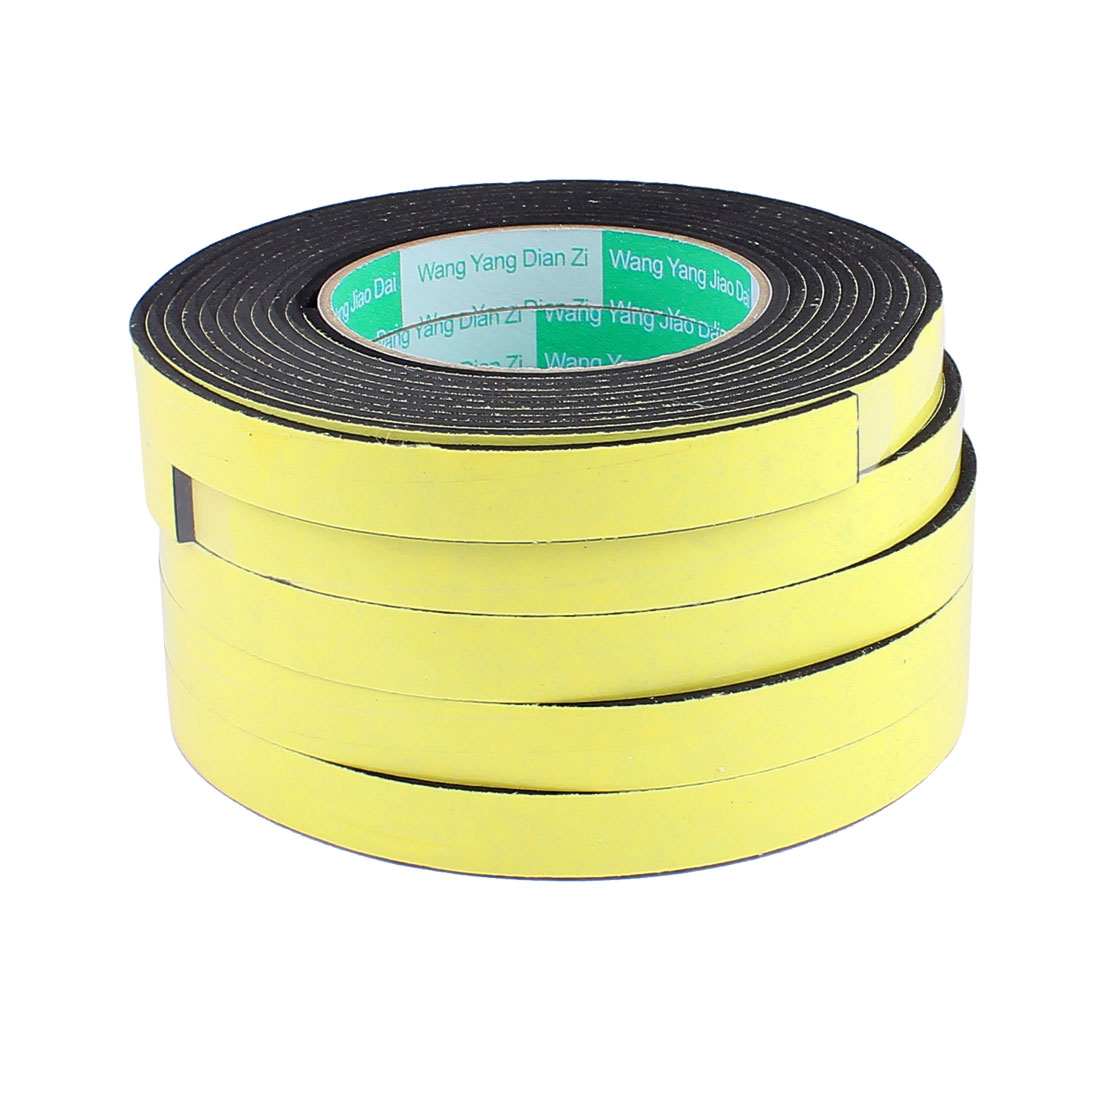 5 Pcs 1.5CM Width 4M Length 3MM Thick Single Sided Sealing Shockproof Sponge Tape